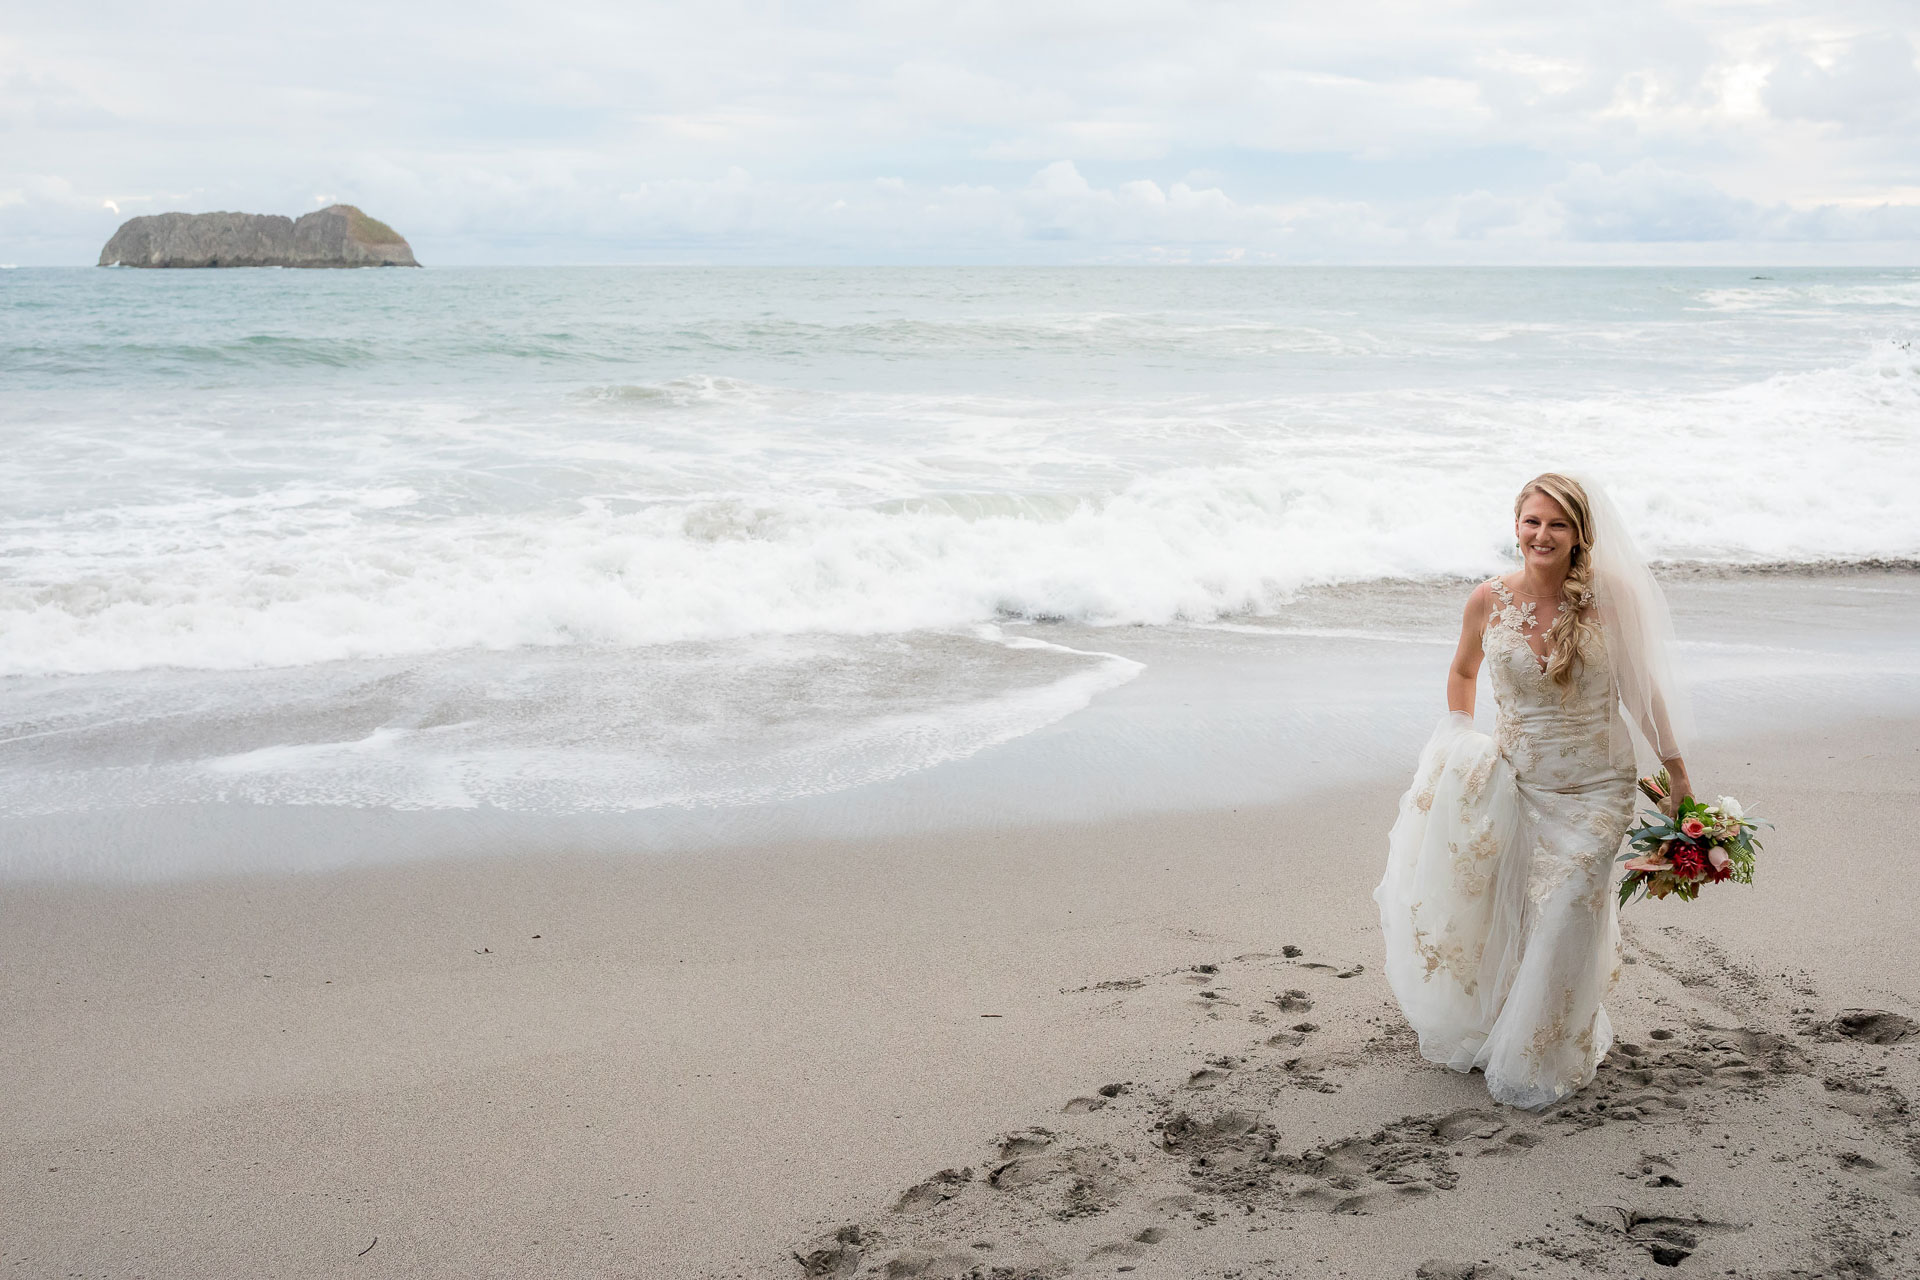 Beach elopement photography from Costa Rica | The bride walks along the beach in her wedding gown